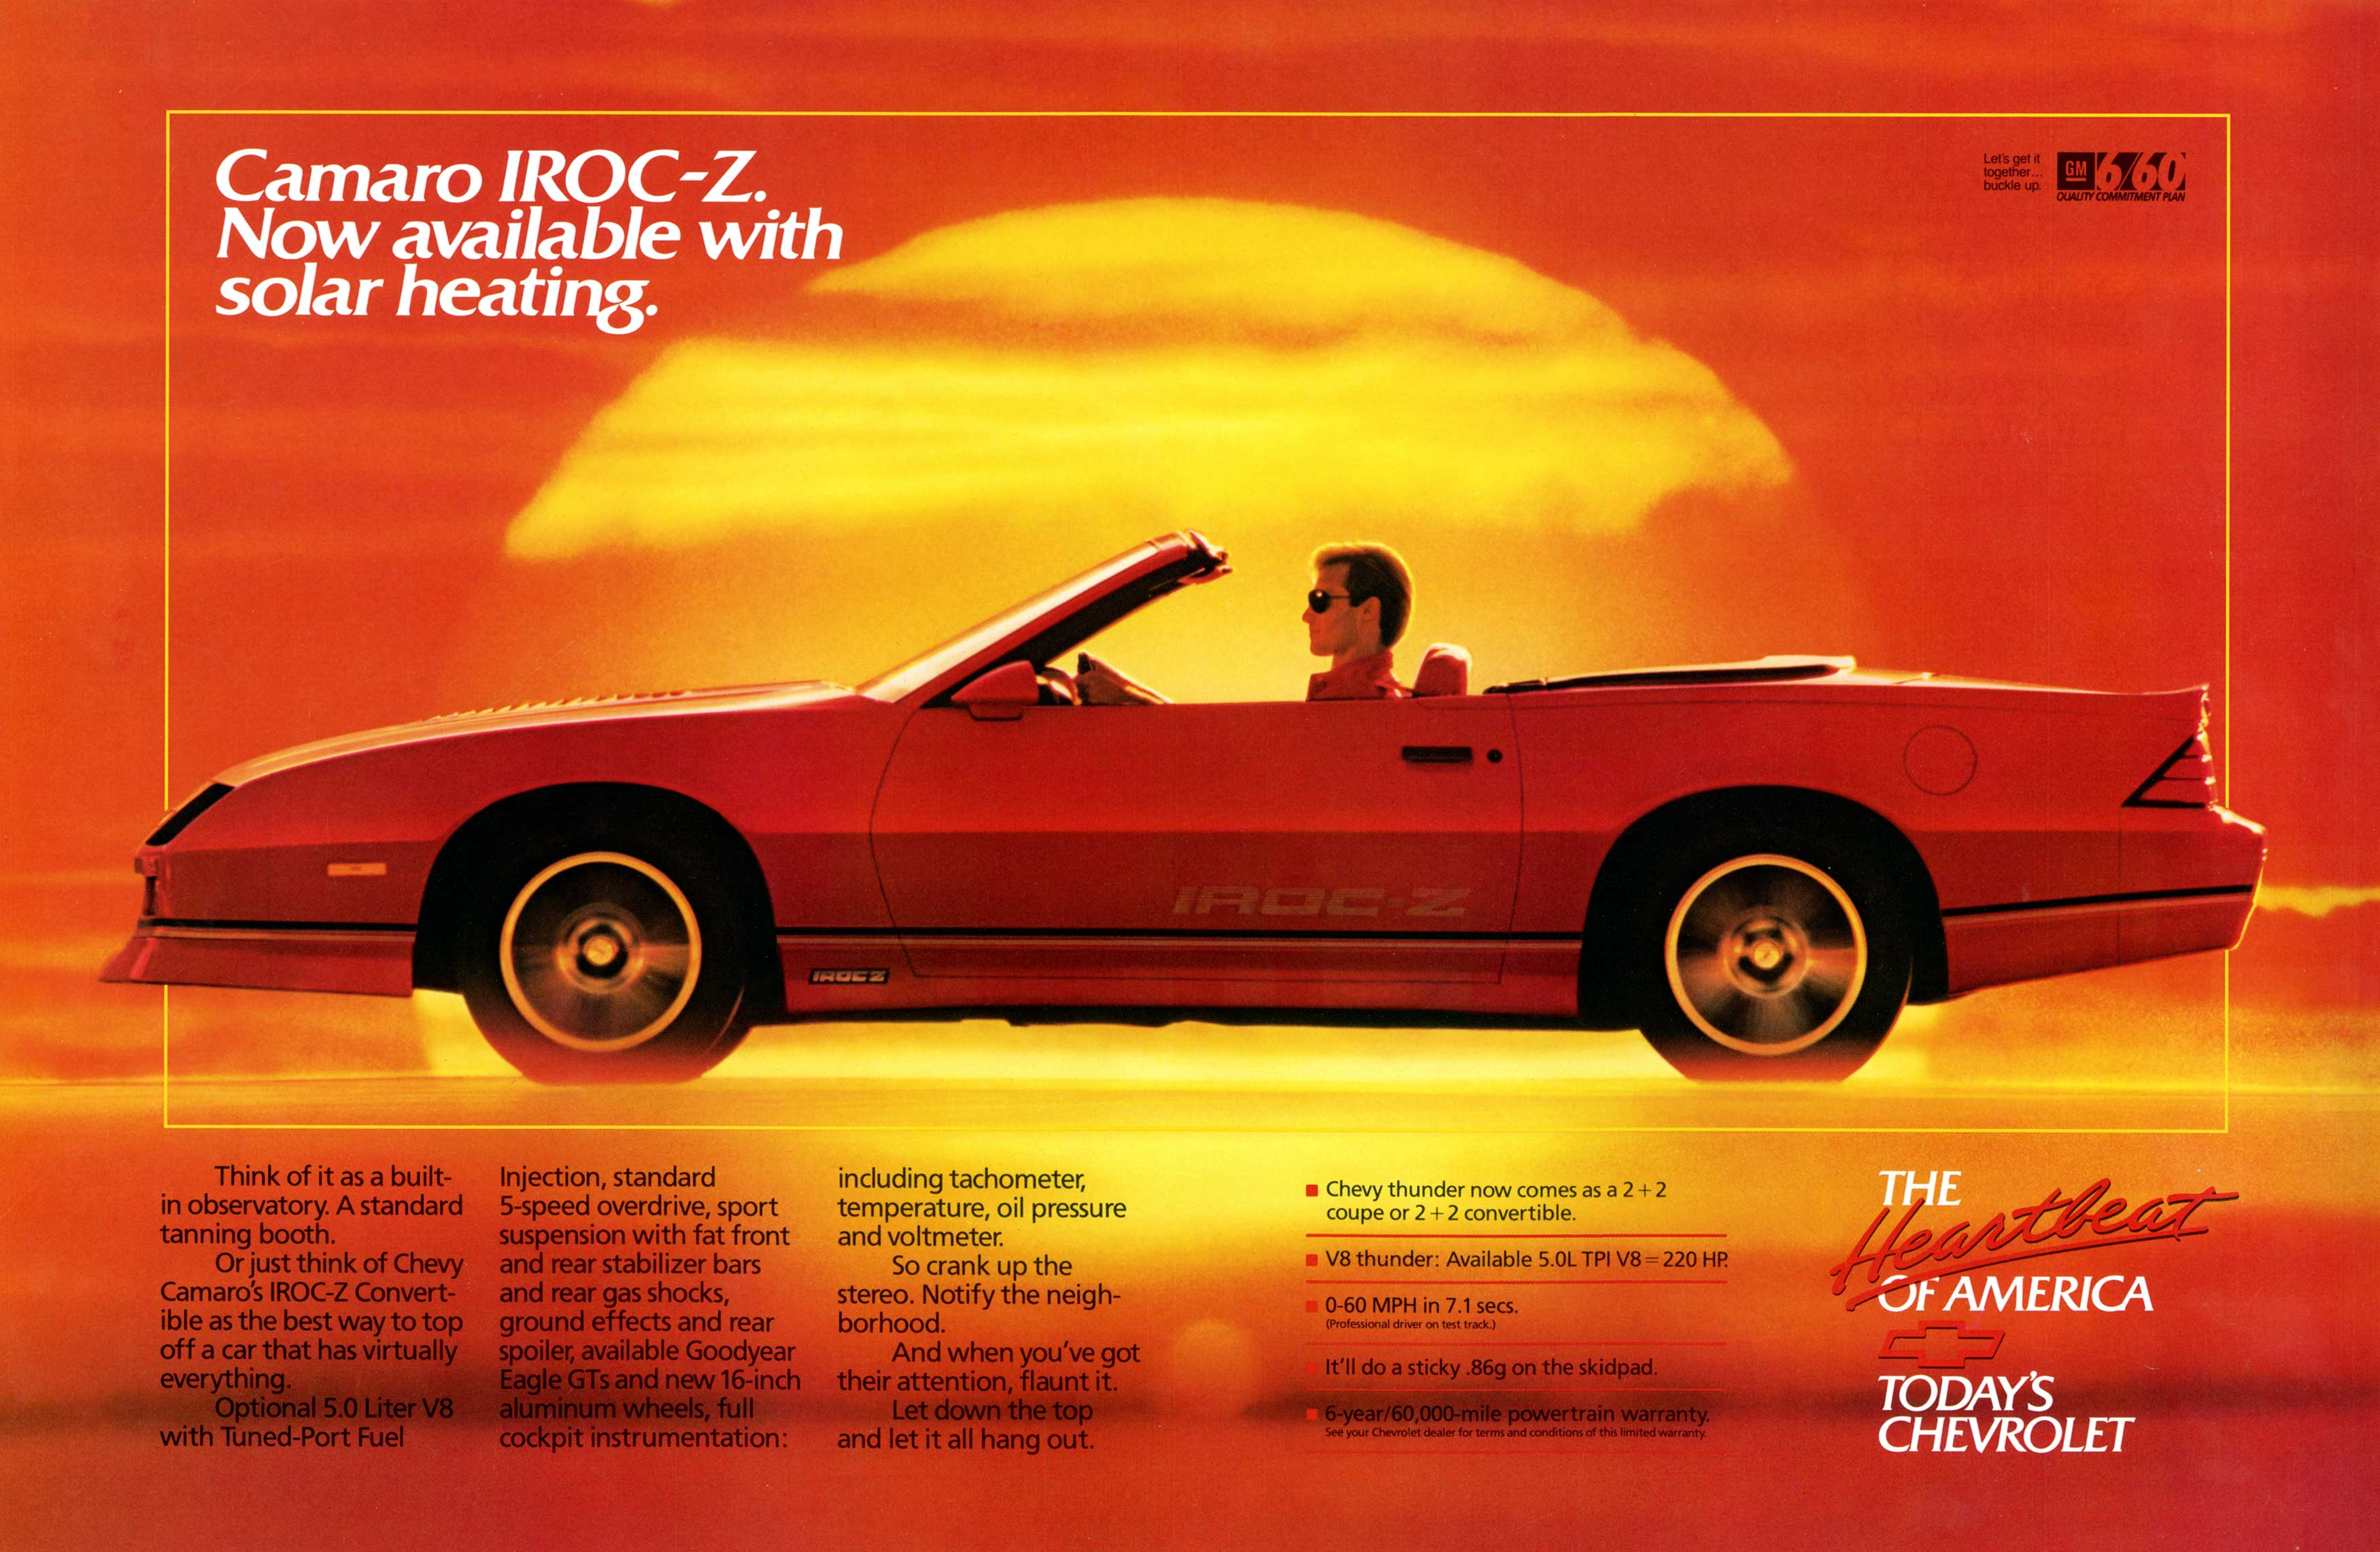 Photo of Best Car Ads: Camaro IROC-Z